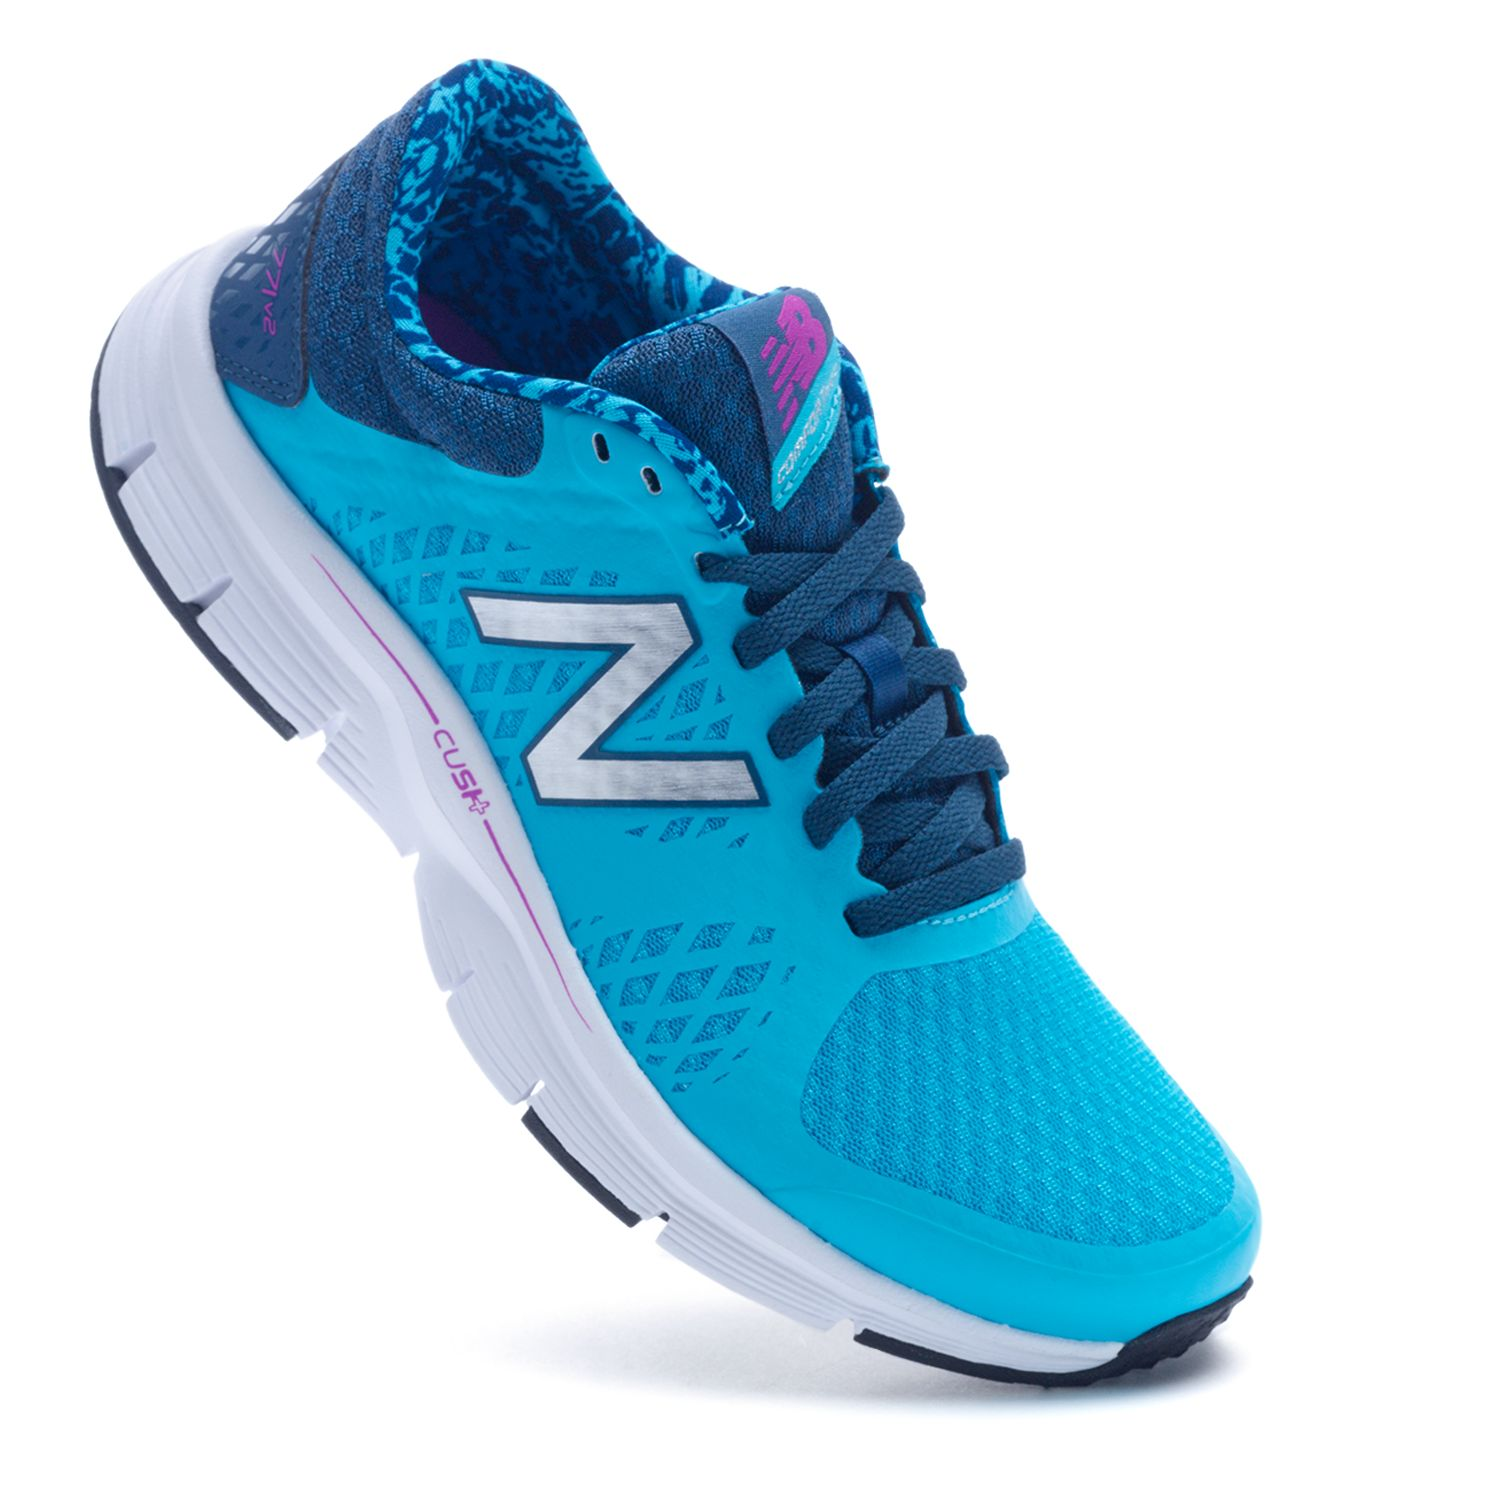 new balance women's running shoes size 10.5